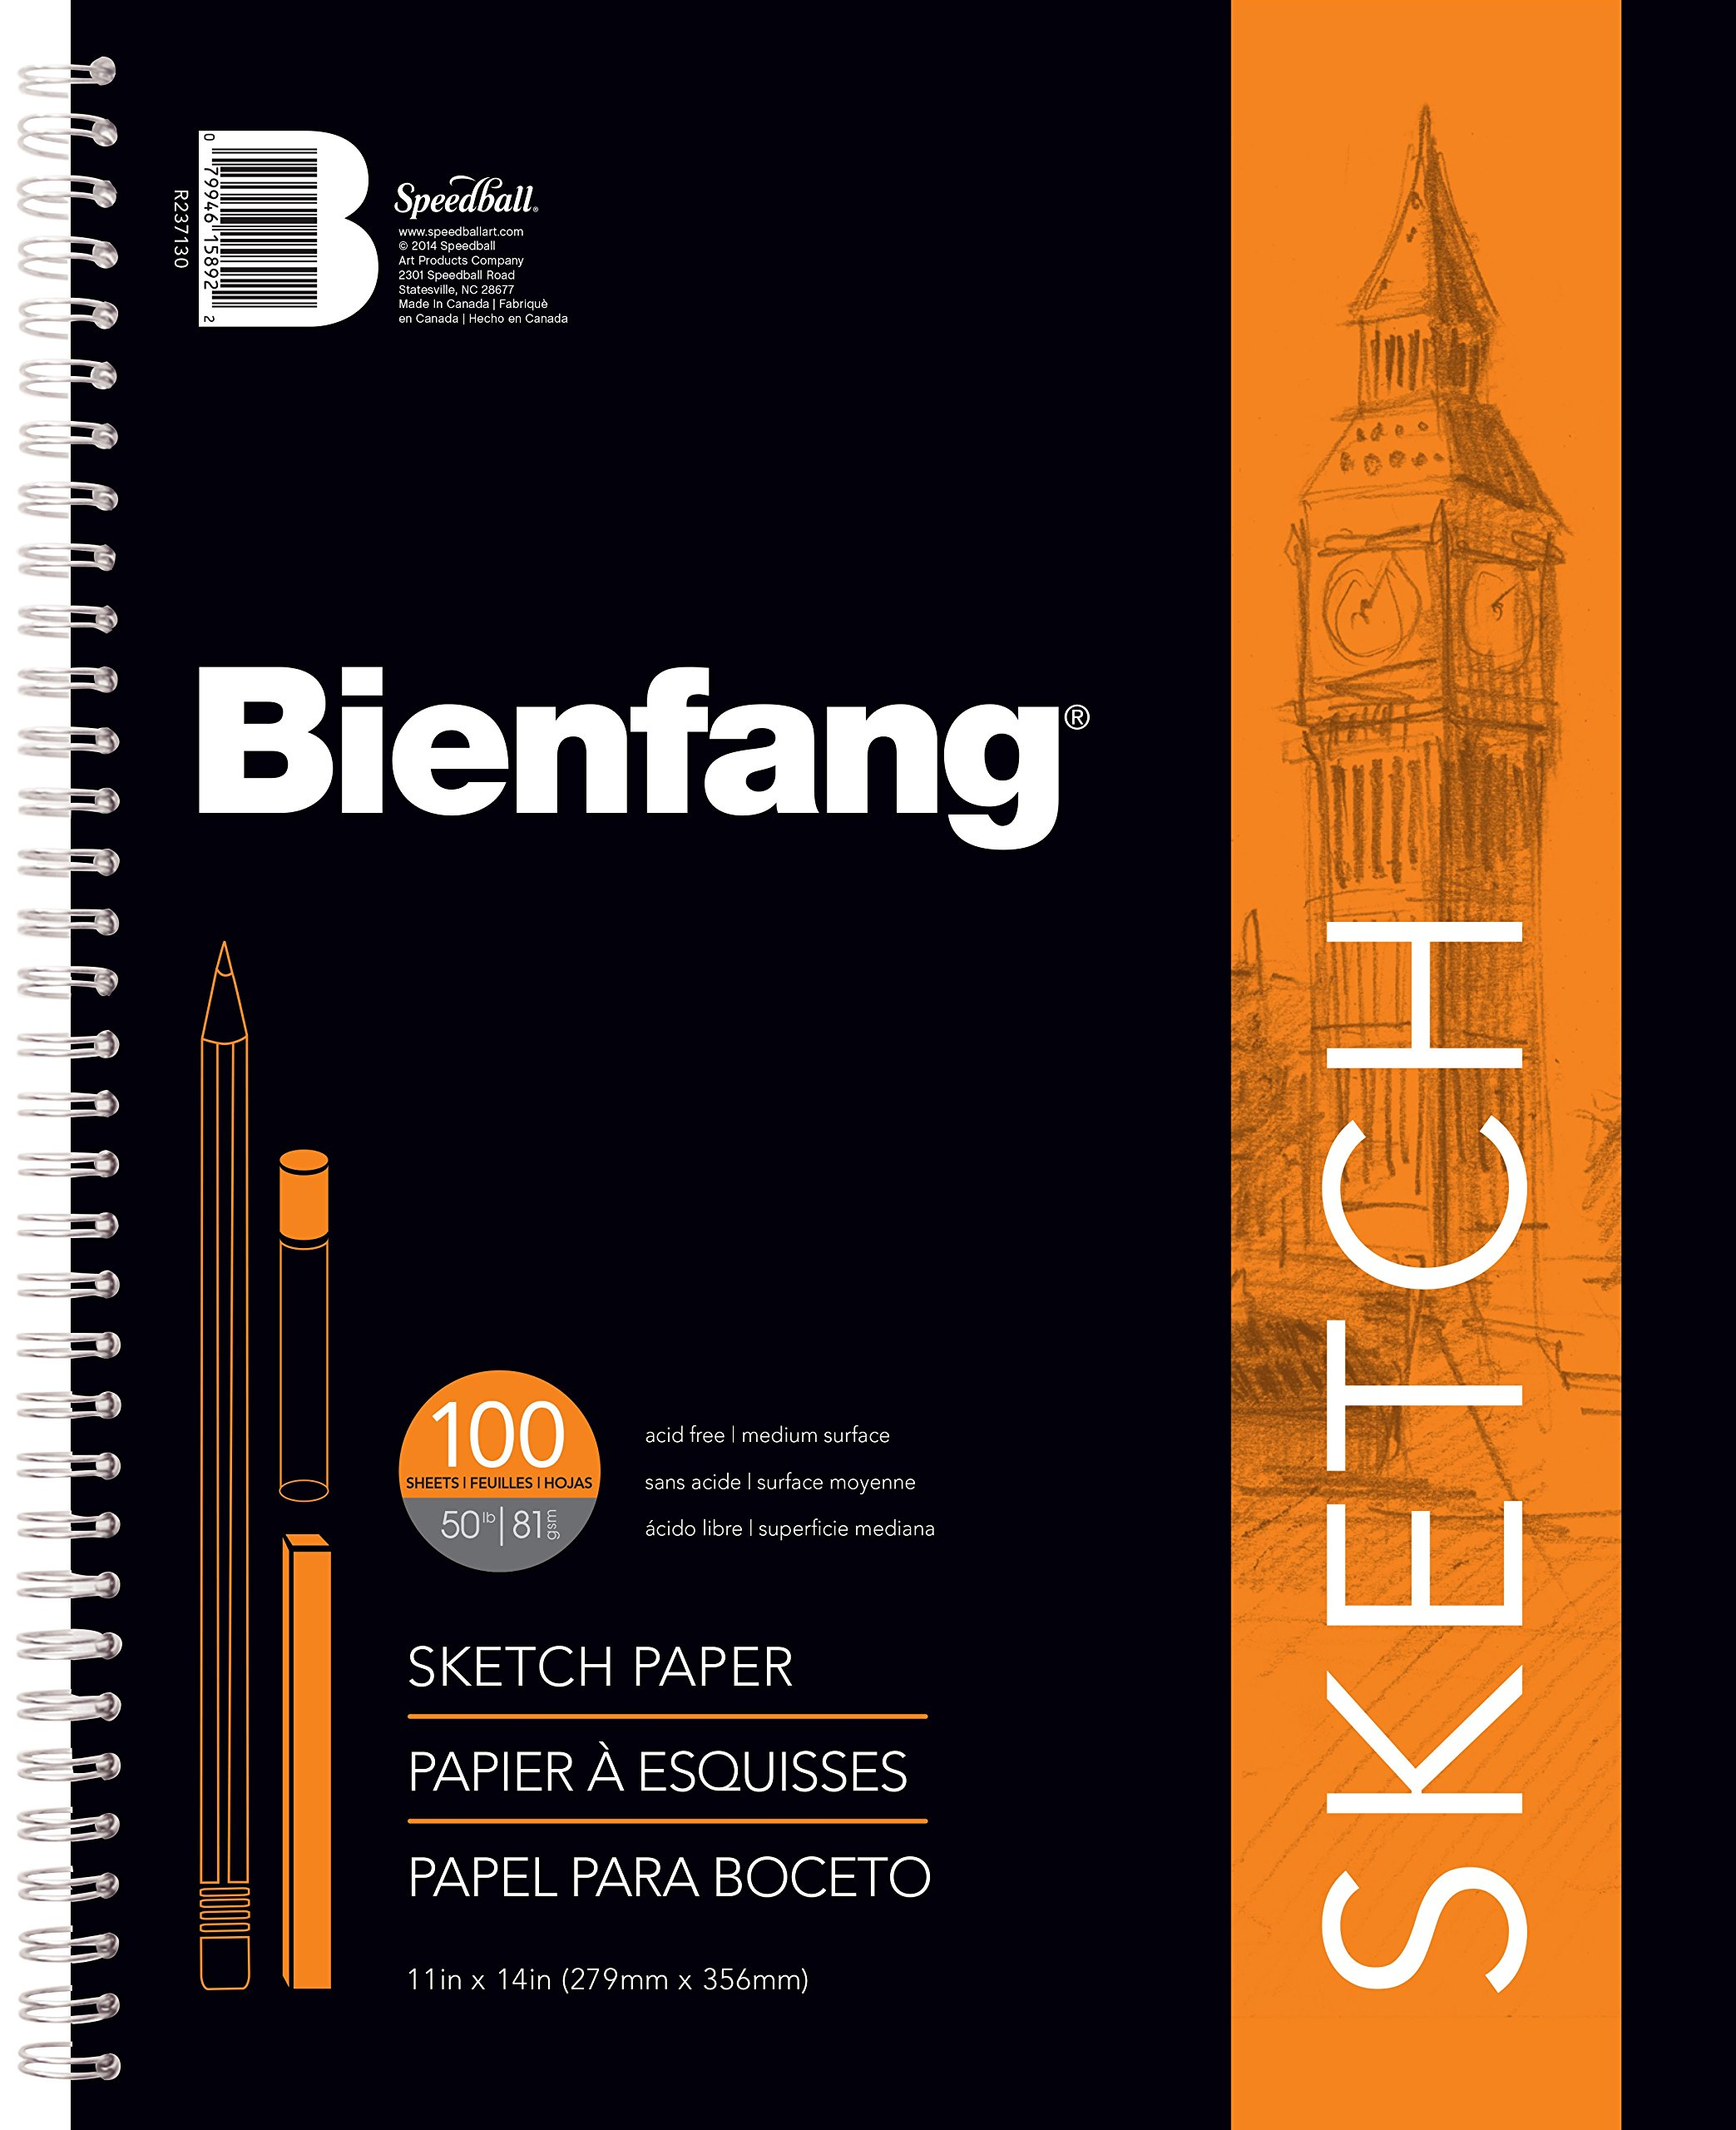 Bienfang 11 by 14-Inch Sketchbook, 100 Sheets by Bienfang